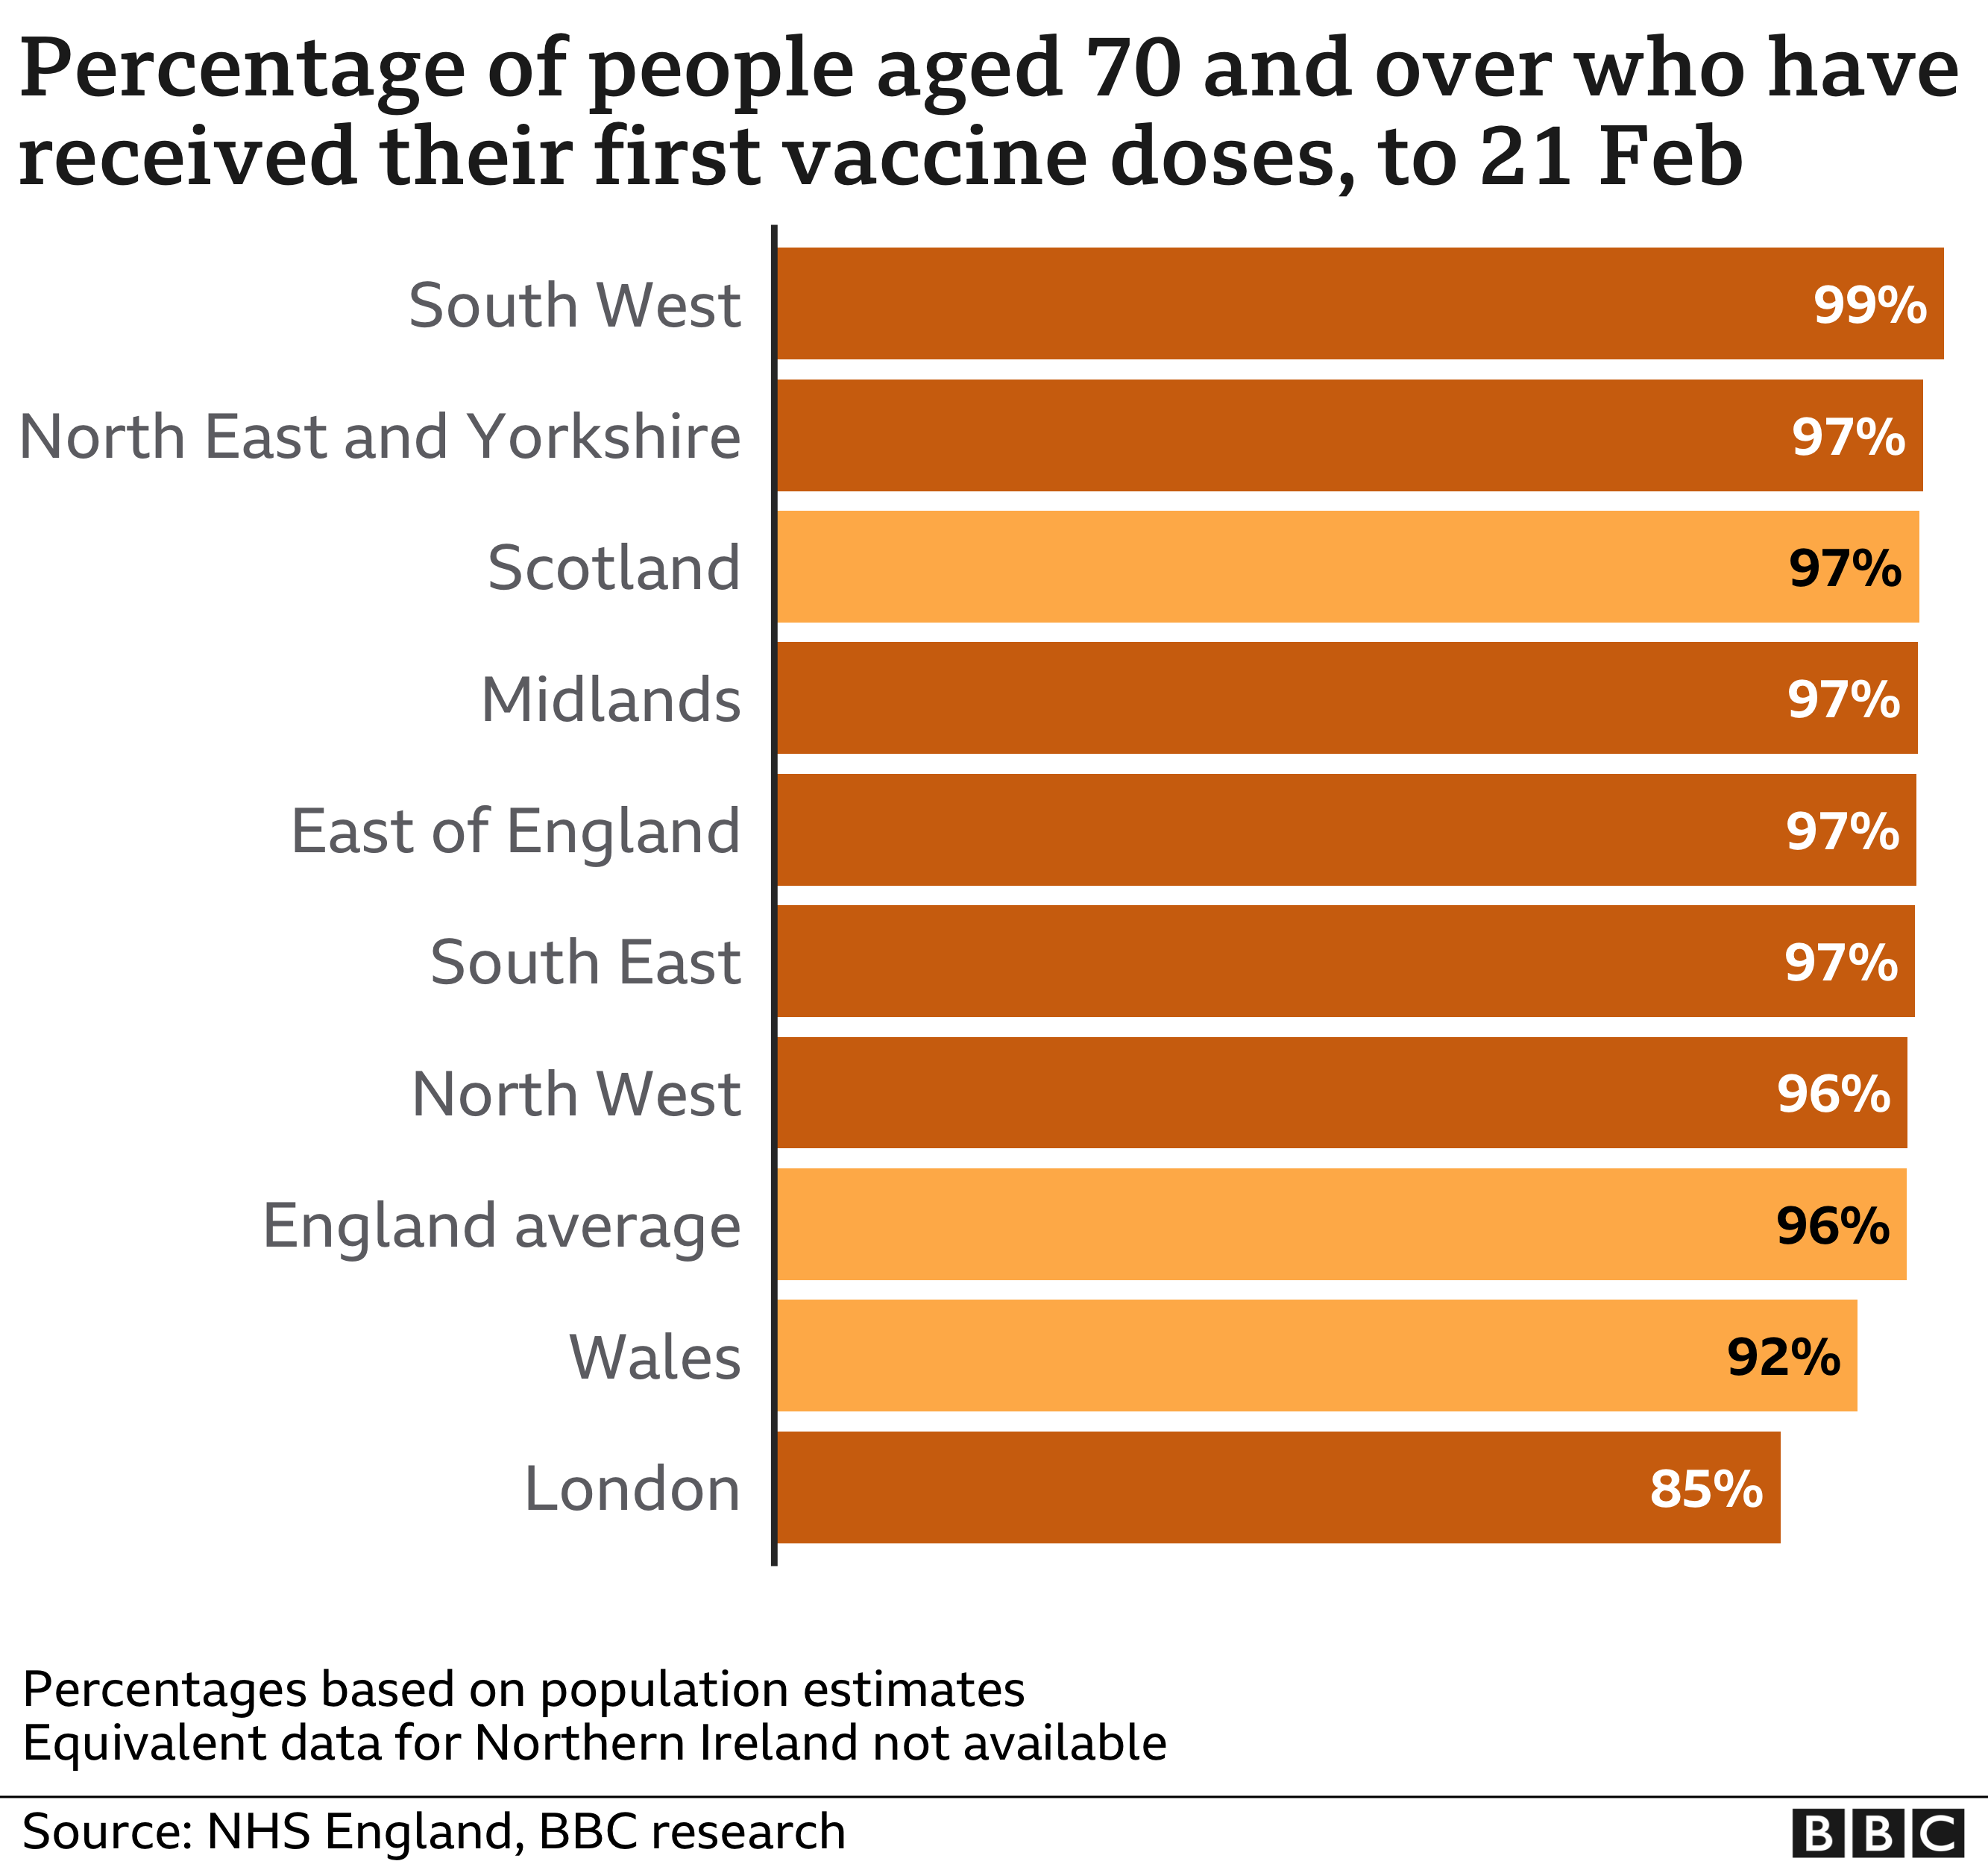 Percentage of over-70s vaccinated with first dose